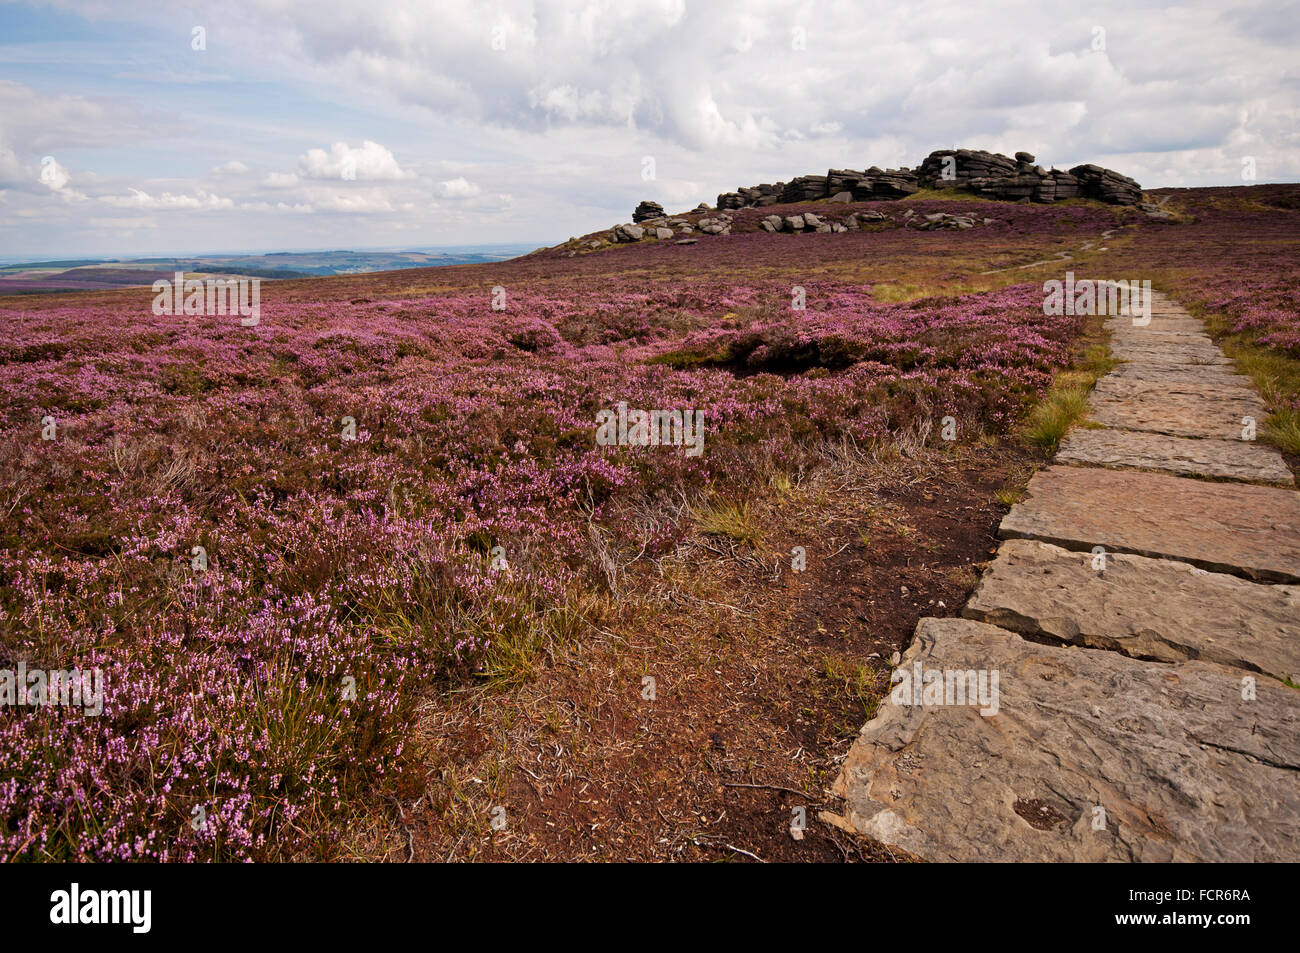 Approaching Back Tor from Lost Lad in the Peak District National Park - Stock Image